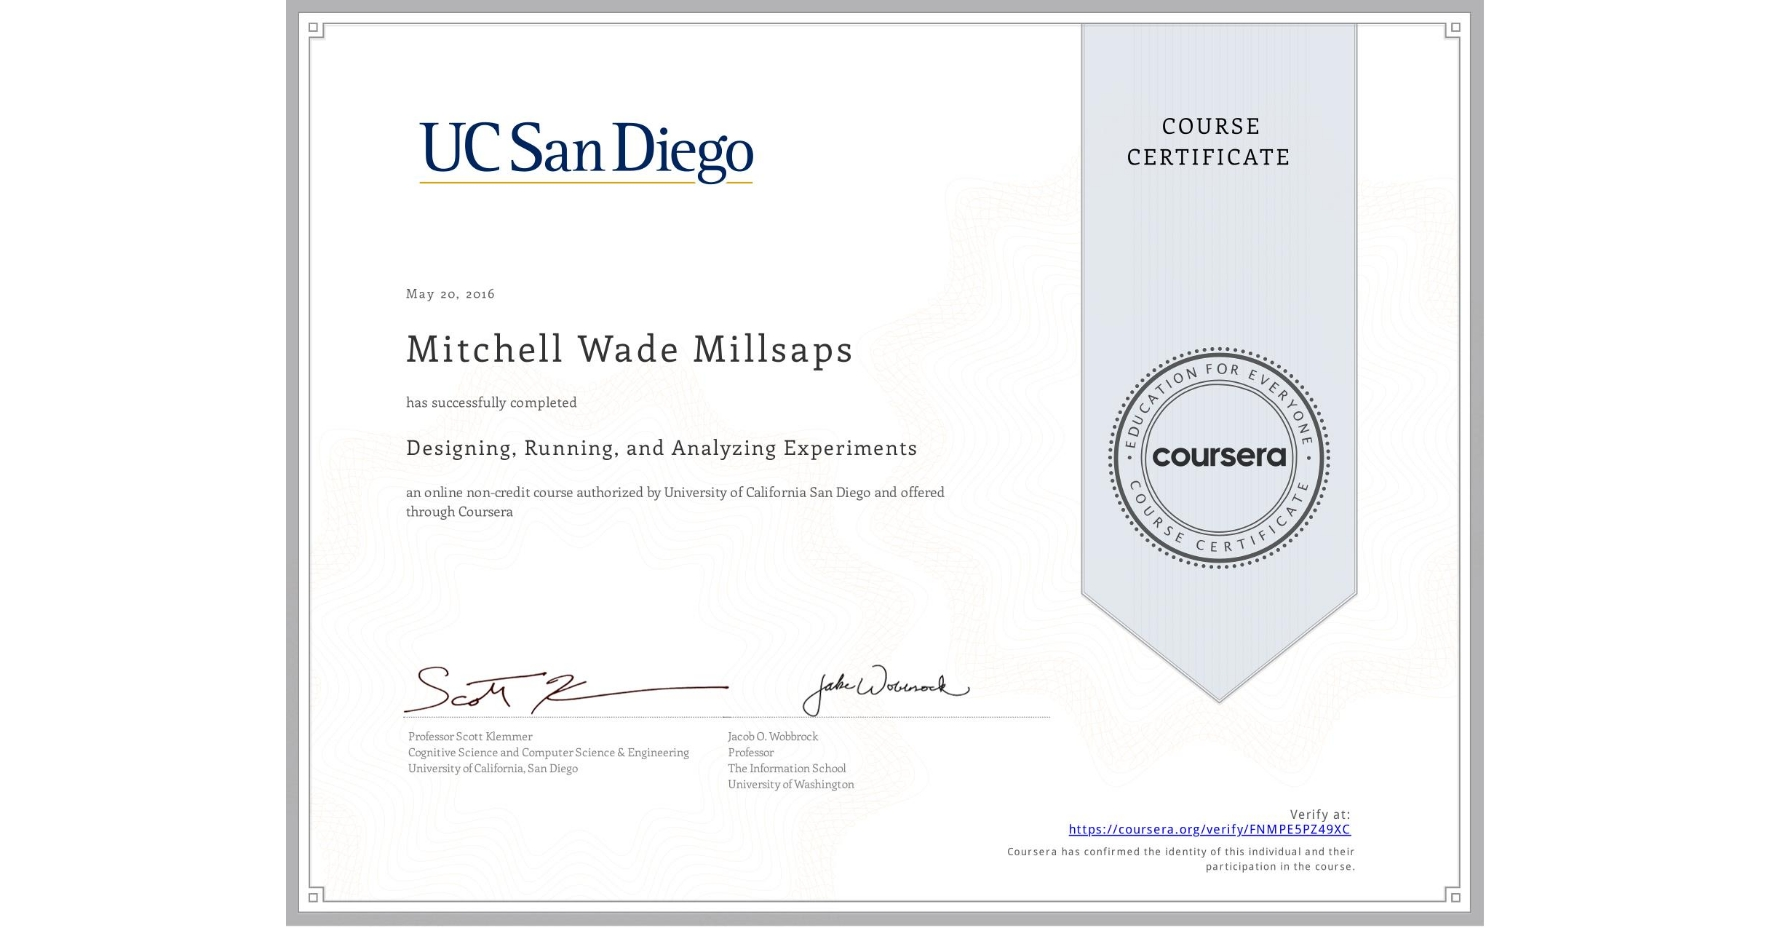 View certificate for Mitchell Wade Millsaps, Designing, Running, and Analyzing Experiments, an online non-credit course authorized by University of California San Diego and offered through Coursera